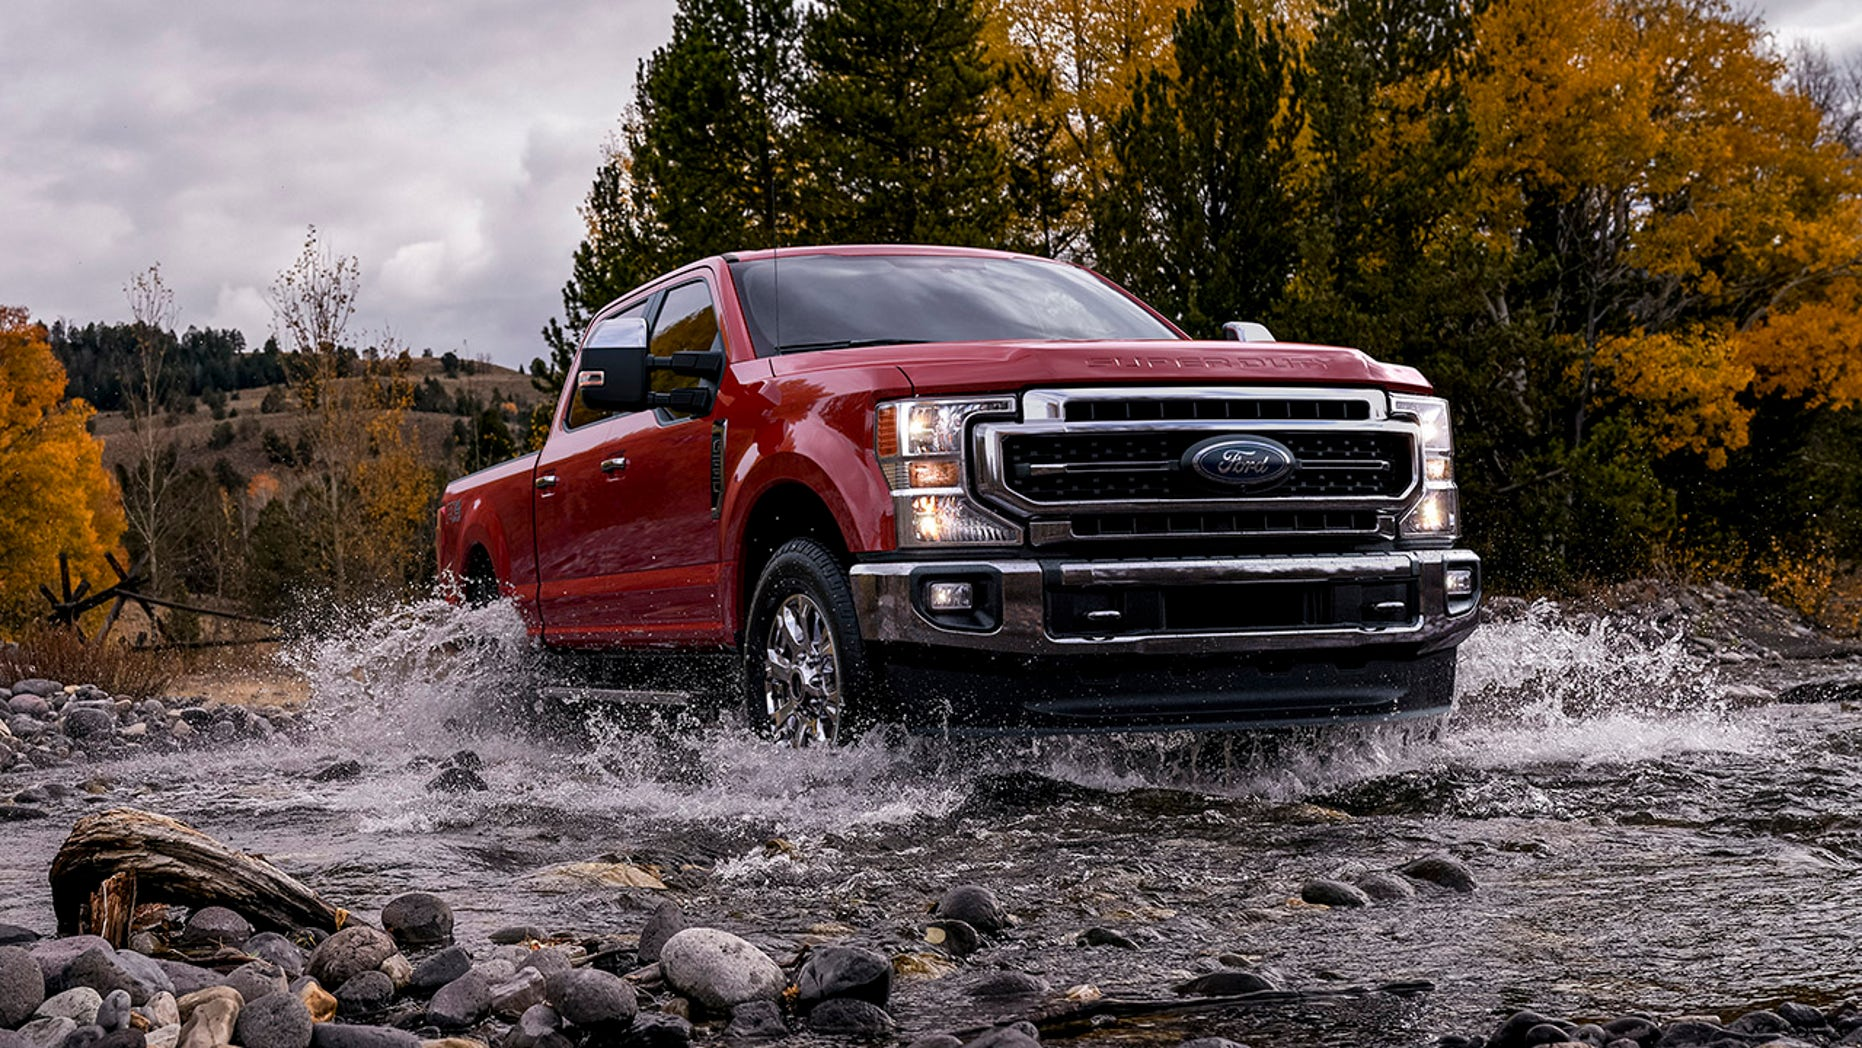 The Ford F-Series Super Duty will be offered in a full complement of F-250 (shown), F-350 and F-450 configurations.